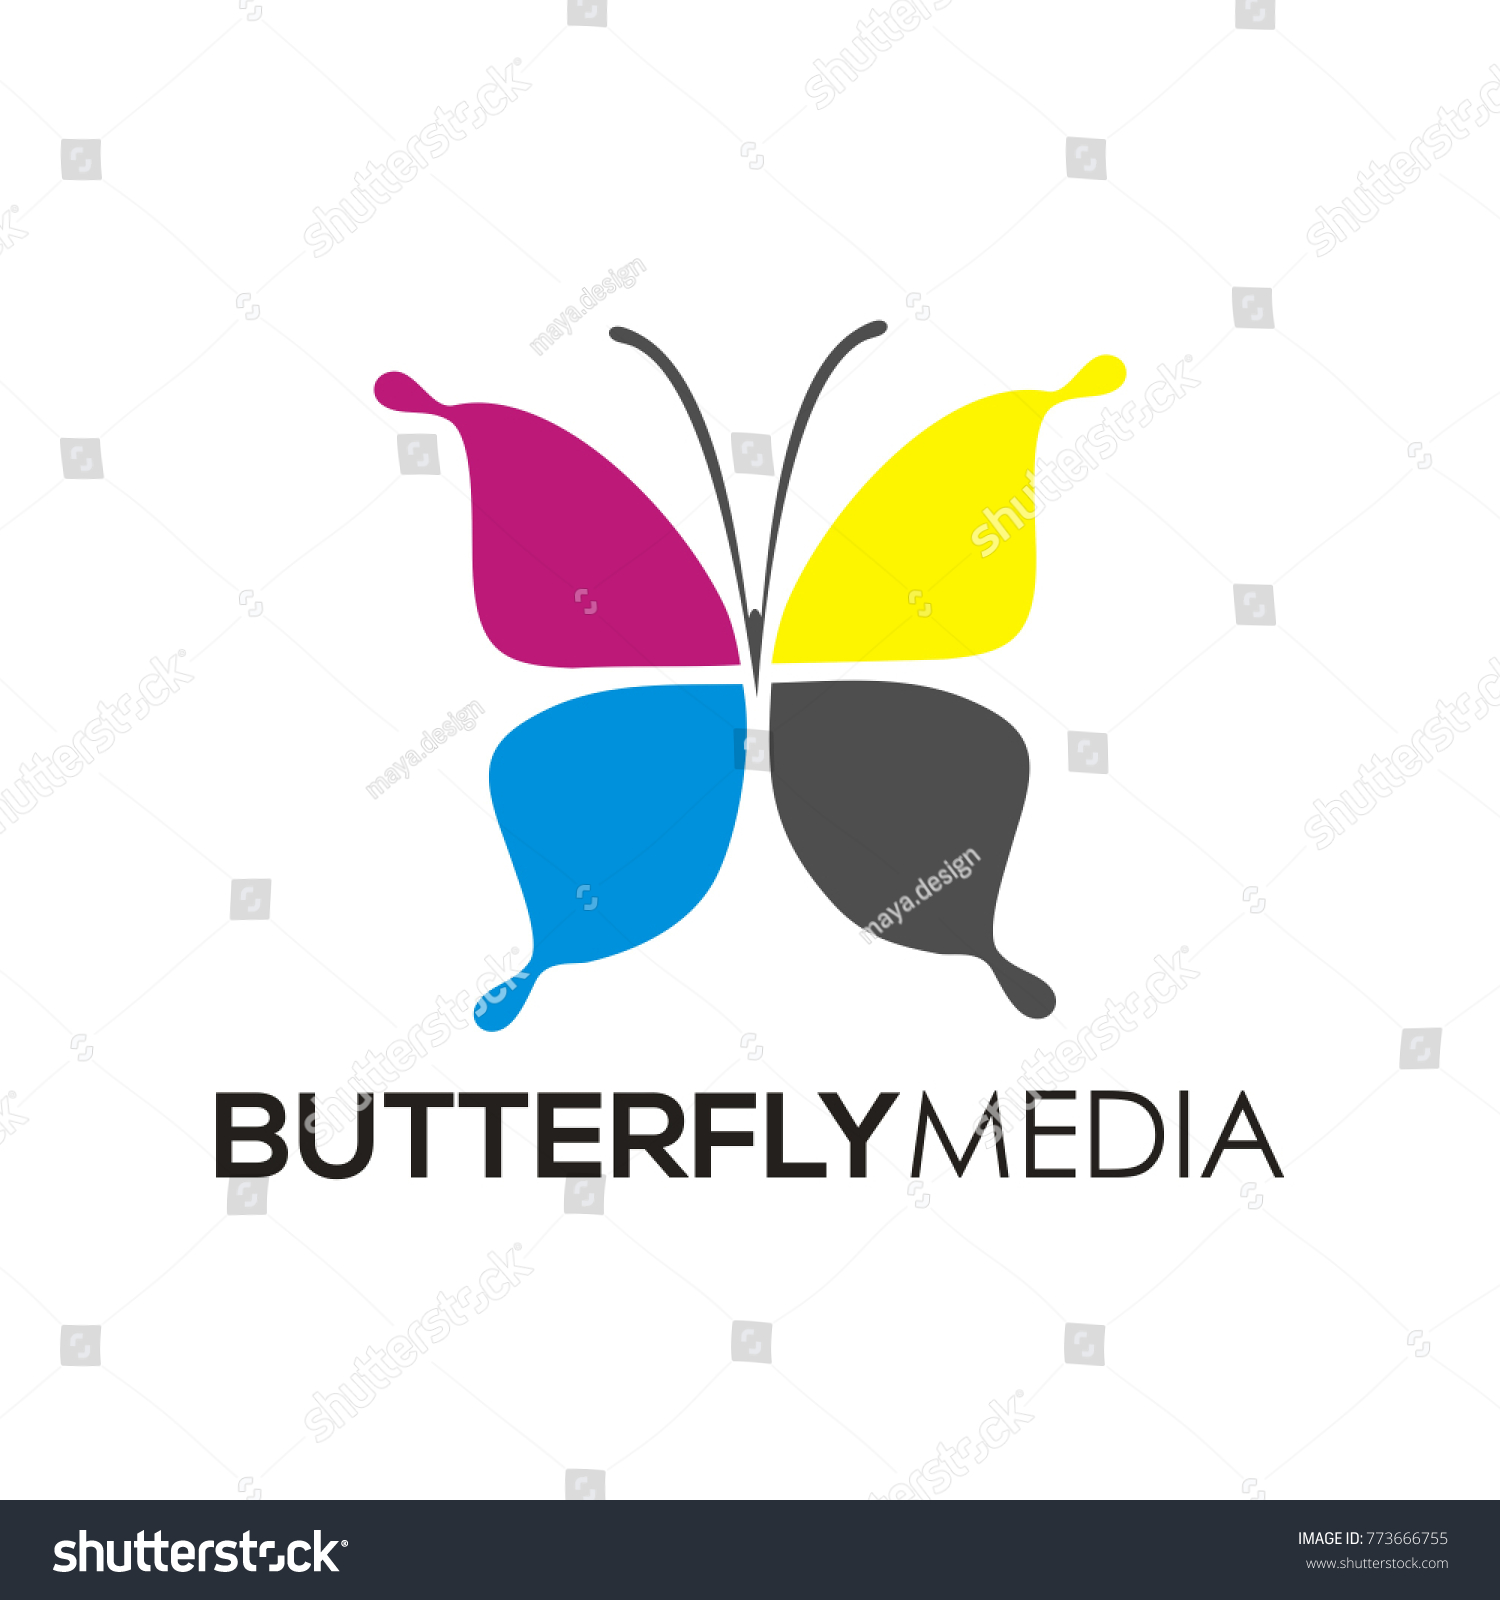 Butterfly media logo icon print design stock vector 773666755 butterfly media logo icon print design stock vector 773666755 shutterstock pronofoot35fo Choice Image